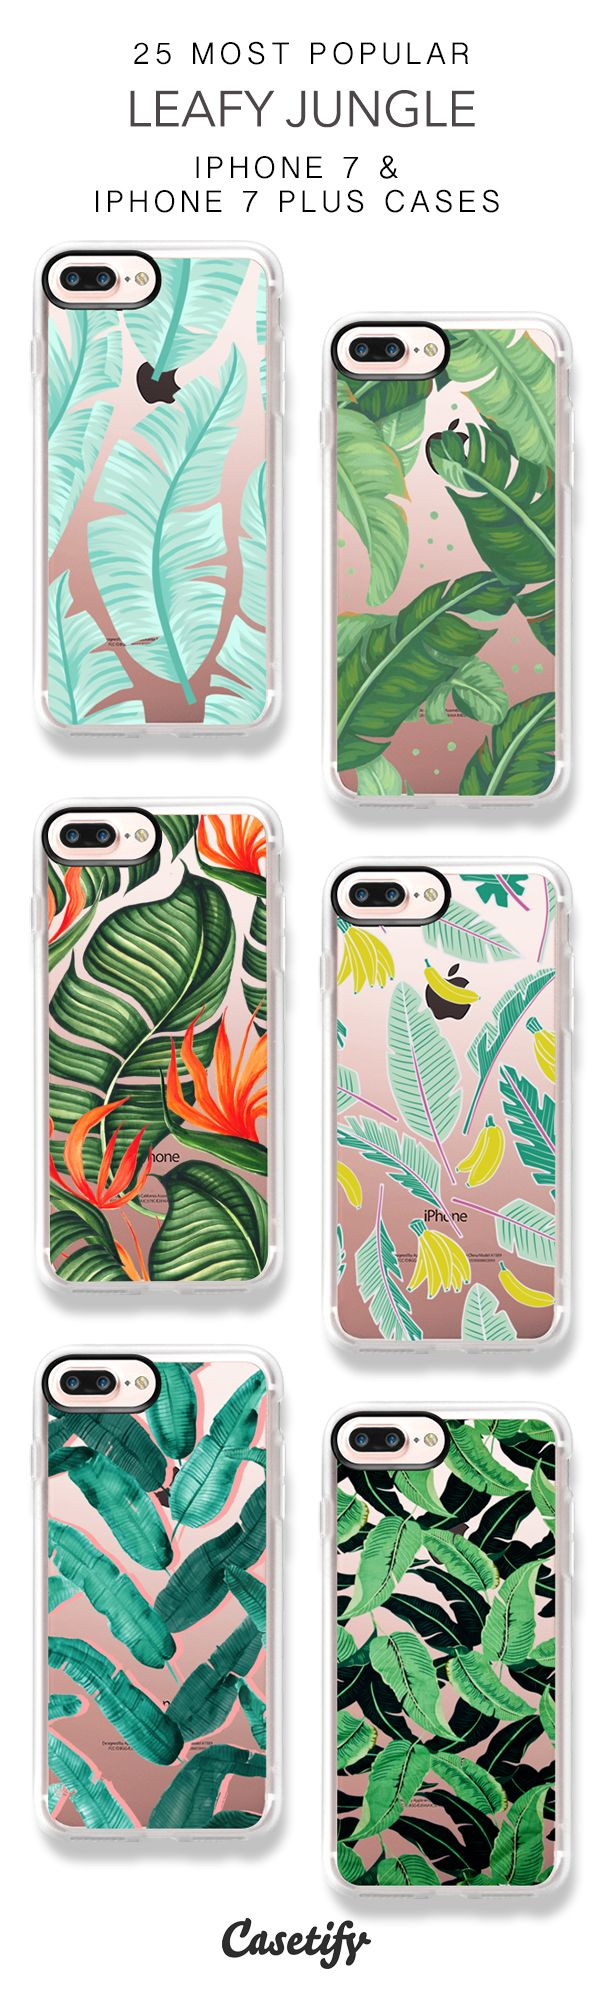 25 Most Popular Leafy Jungle Protective iPhone 7 Cases and iPhone 7 Plus Cases. More Tropical Leaf iPhone case here > https://www.casetify.com/collections/top_100_designs#/?vc=KTqHMyi3oF